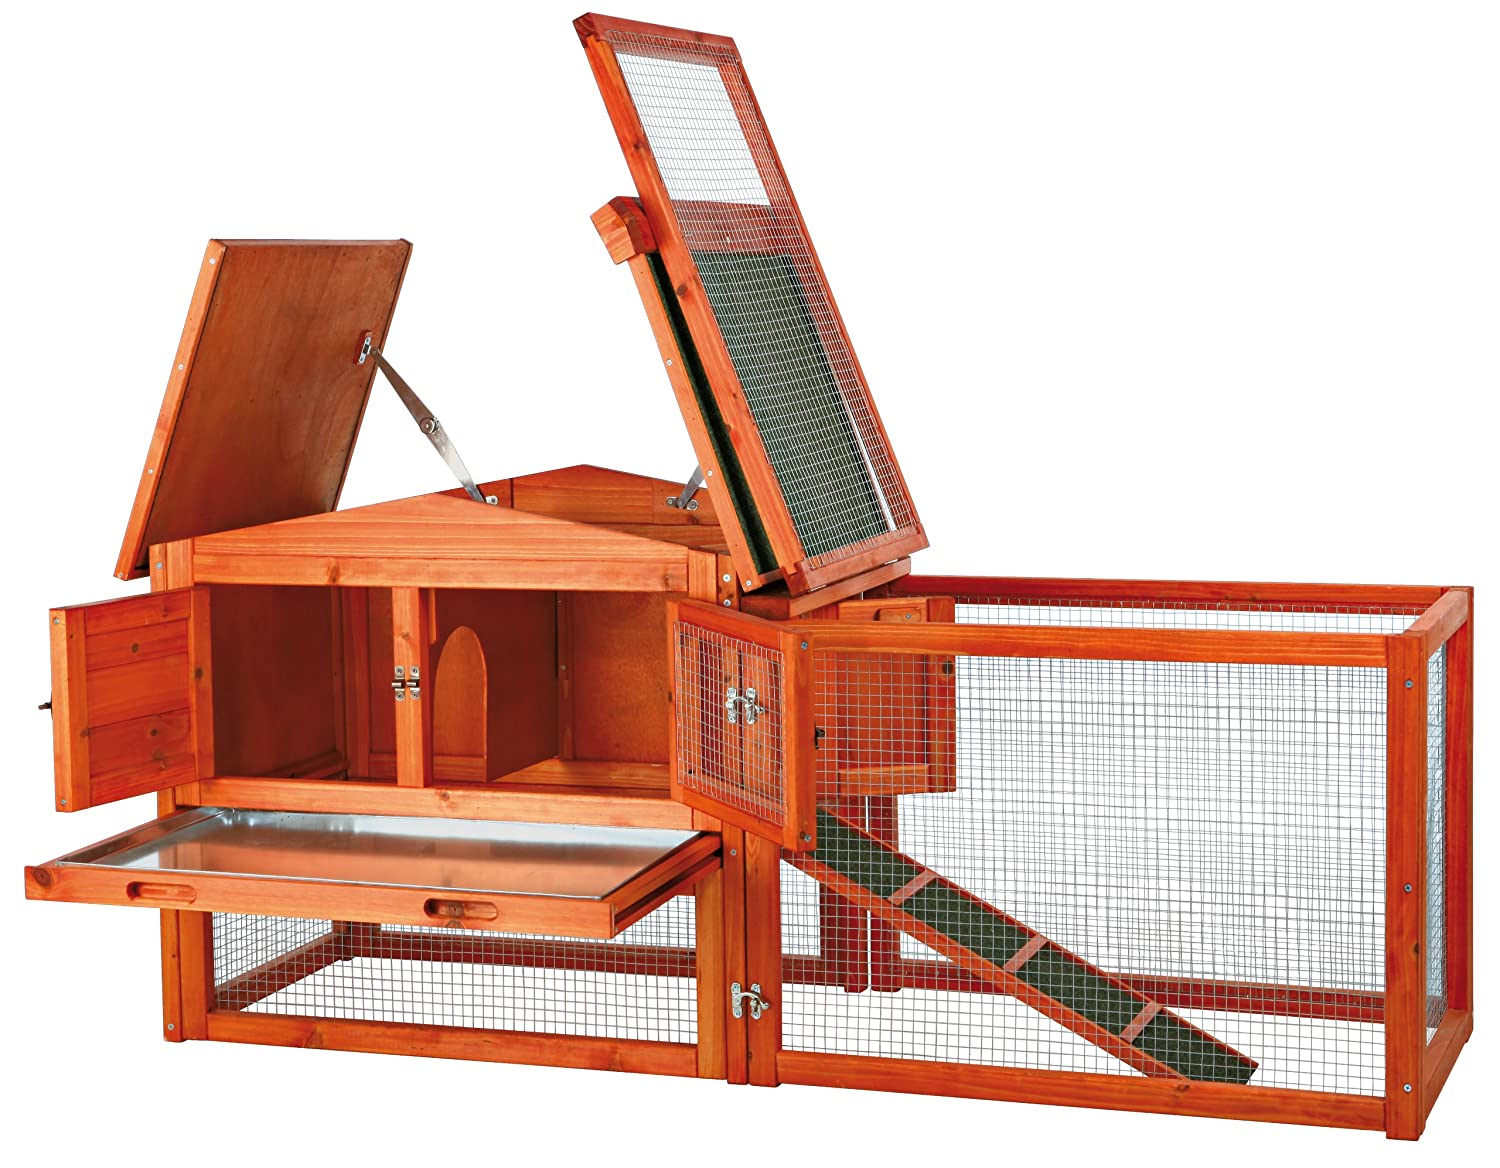 Extra Small Trixie Rabbit Hutch with Outdoor Run